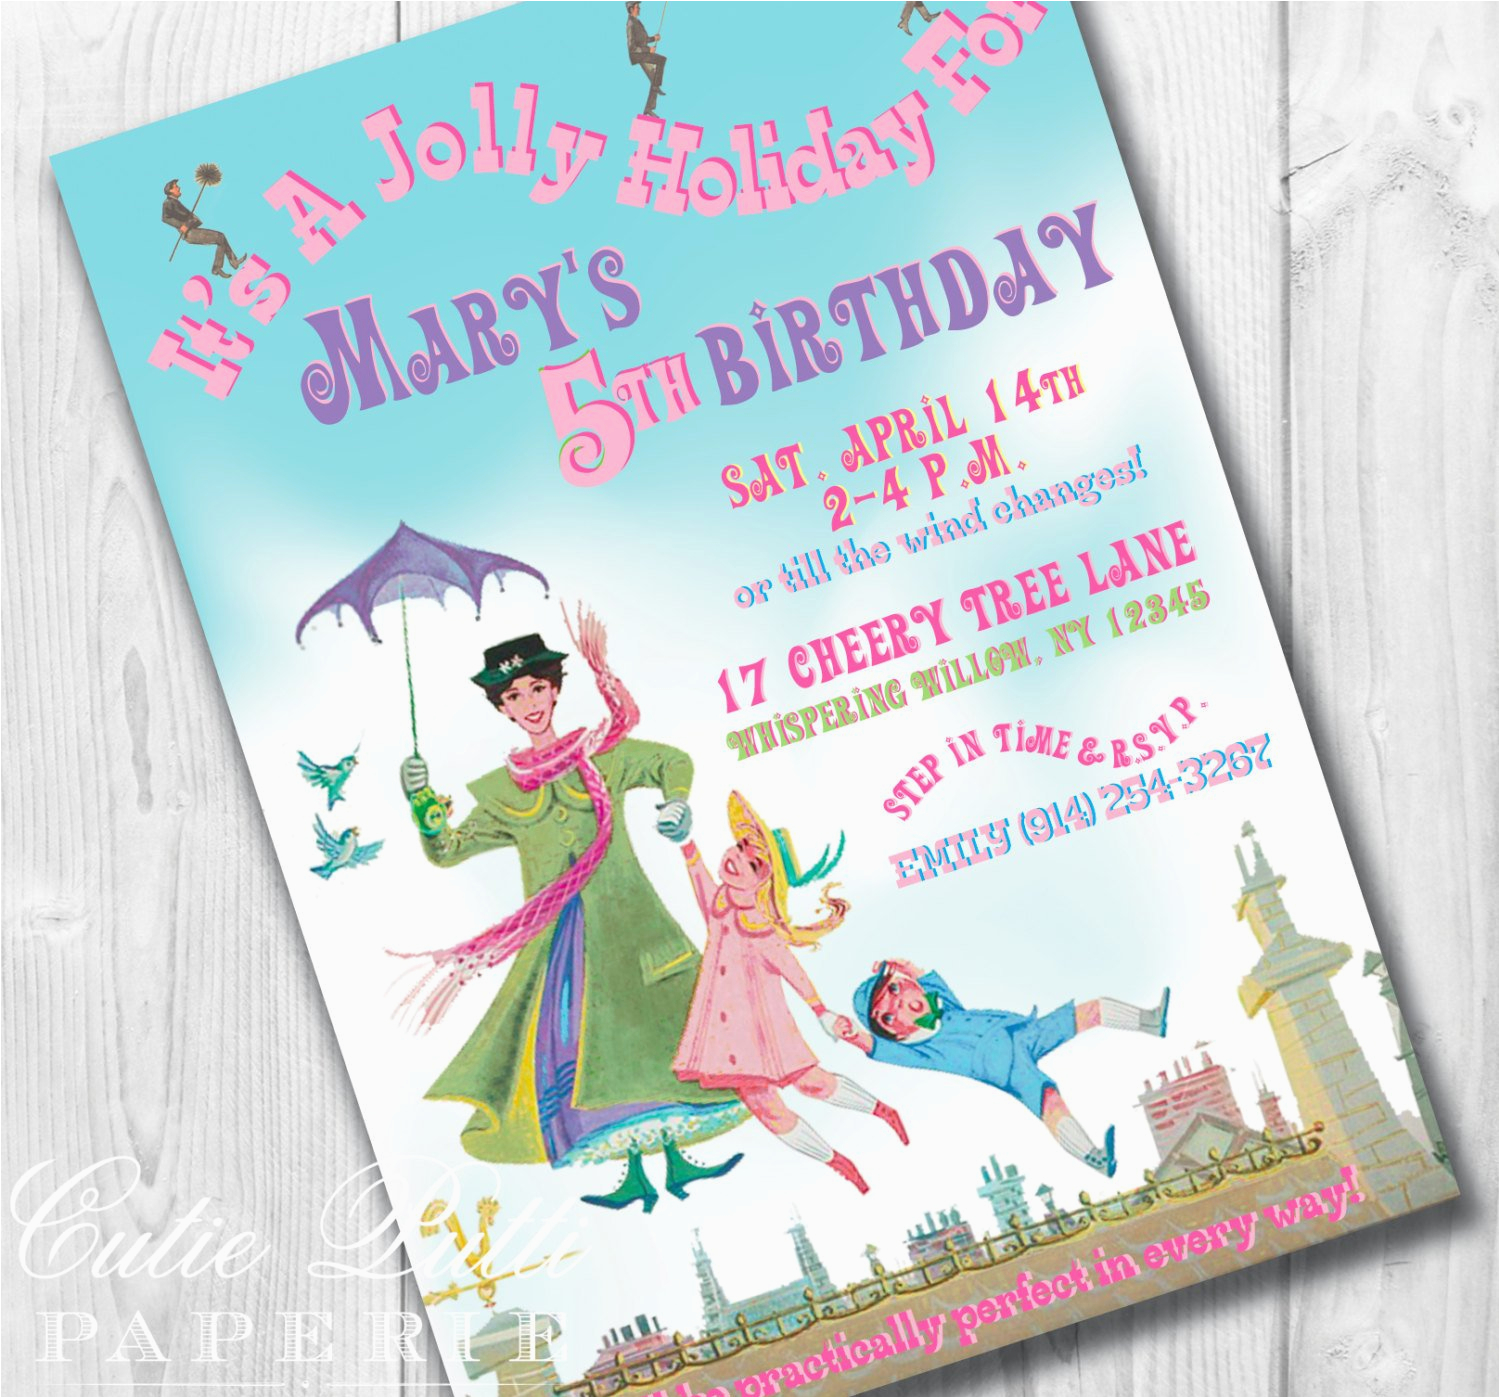 Customizable Birthday Invitations Free Printables Mary Poppins Party Printable Custom